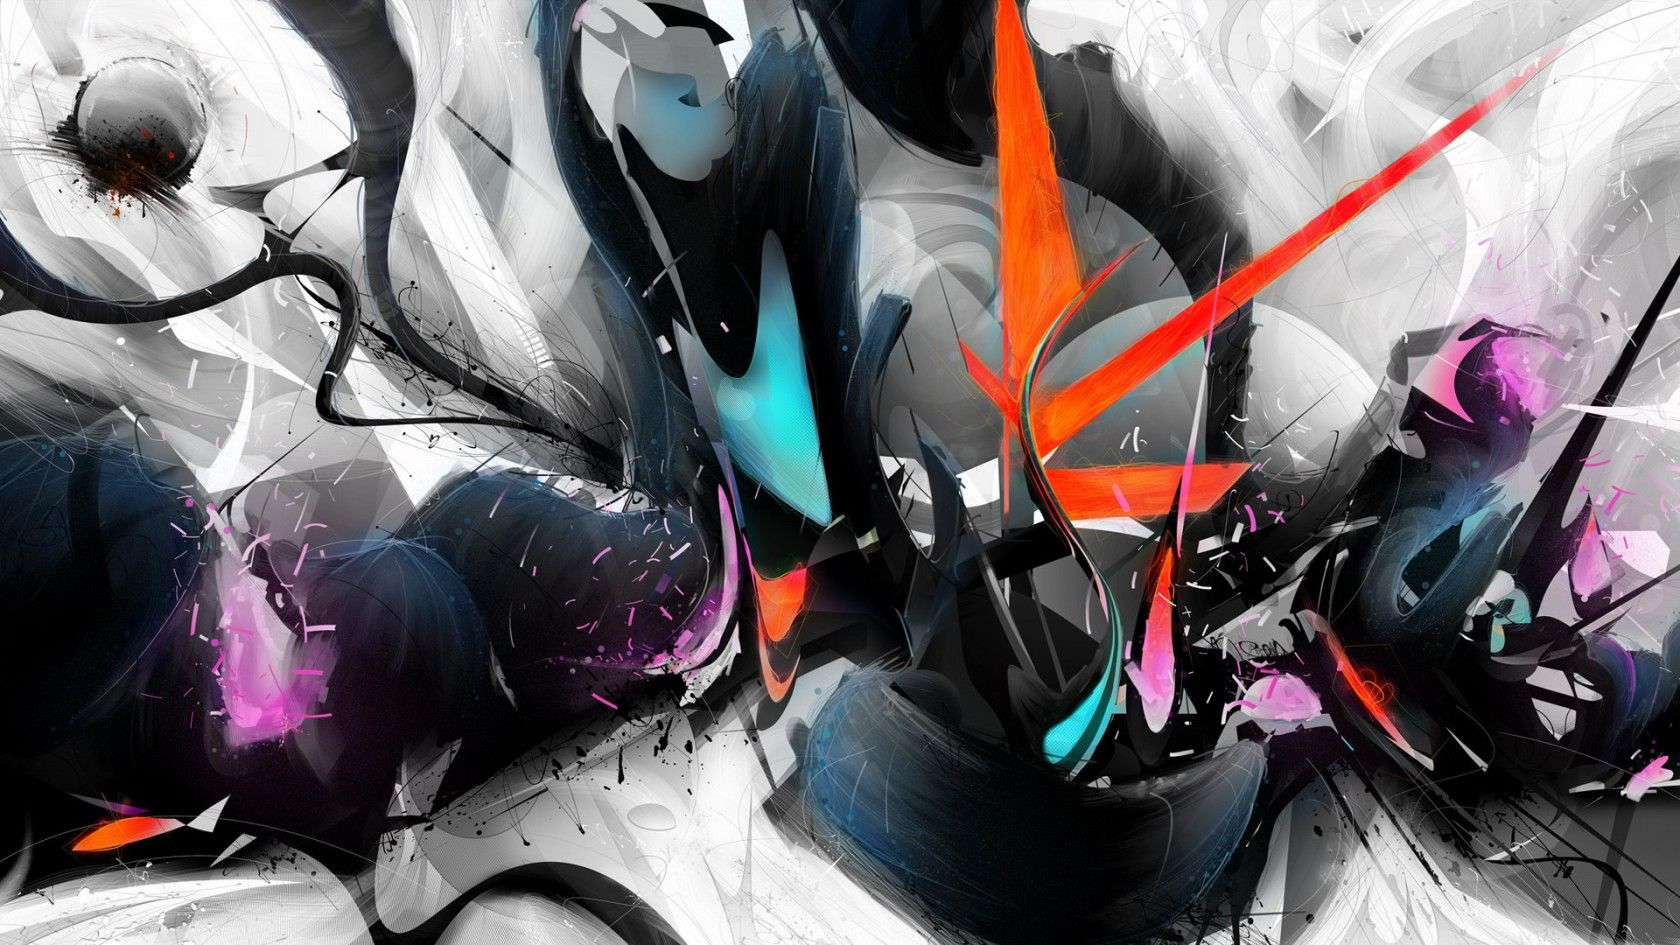 Cool Abstract Art Designs Wallpaper Free Download - http://www ...